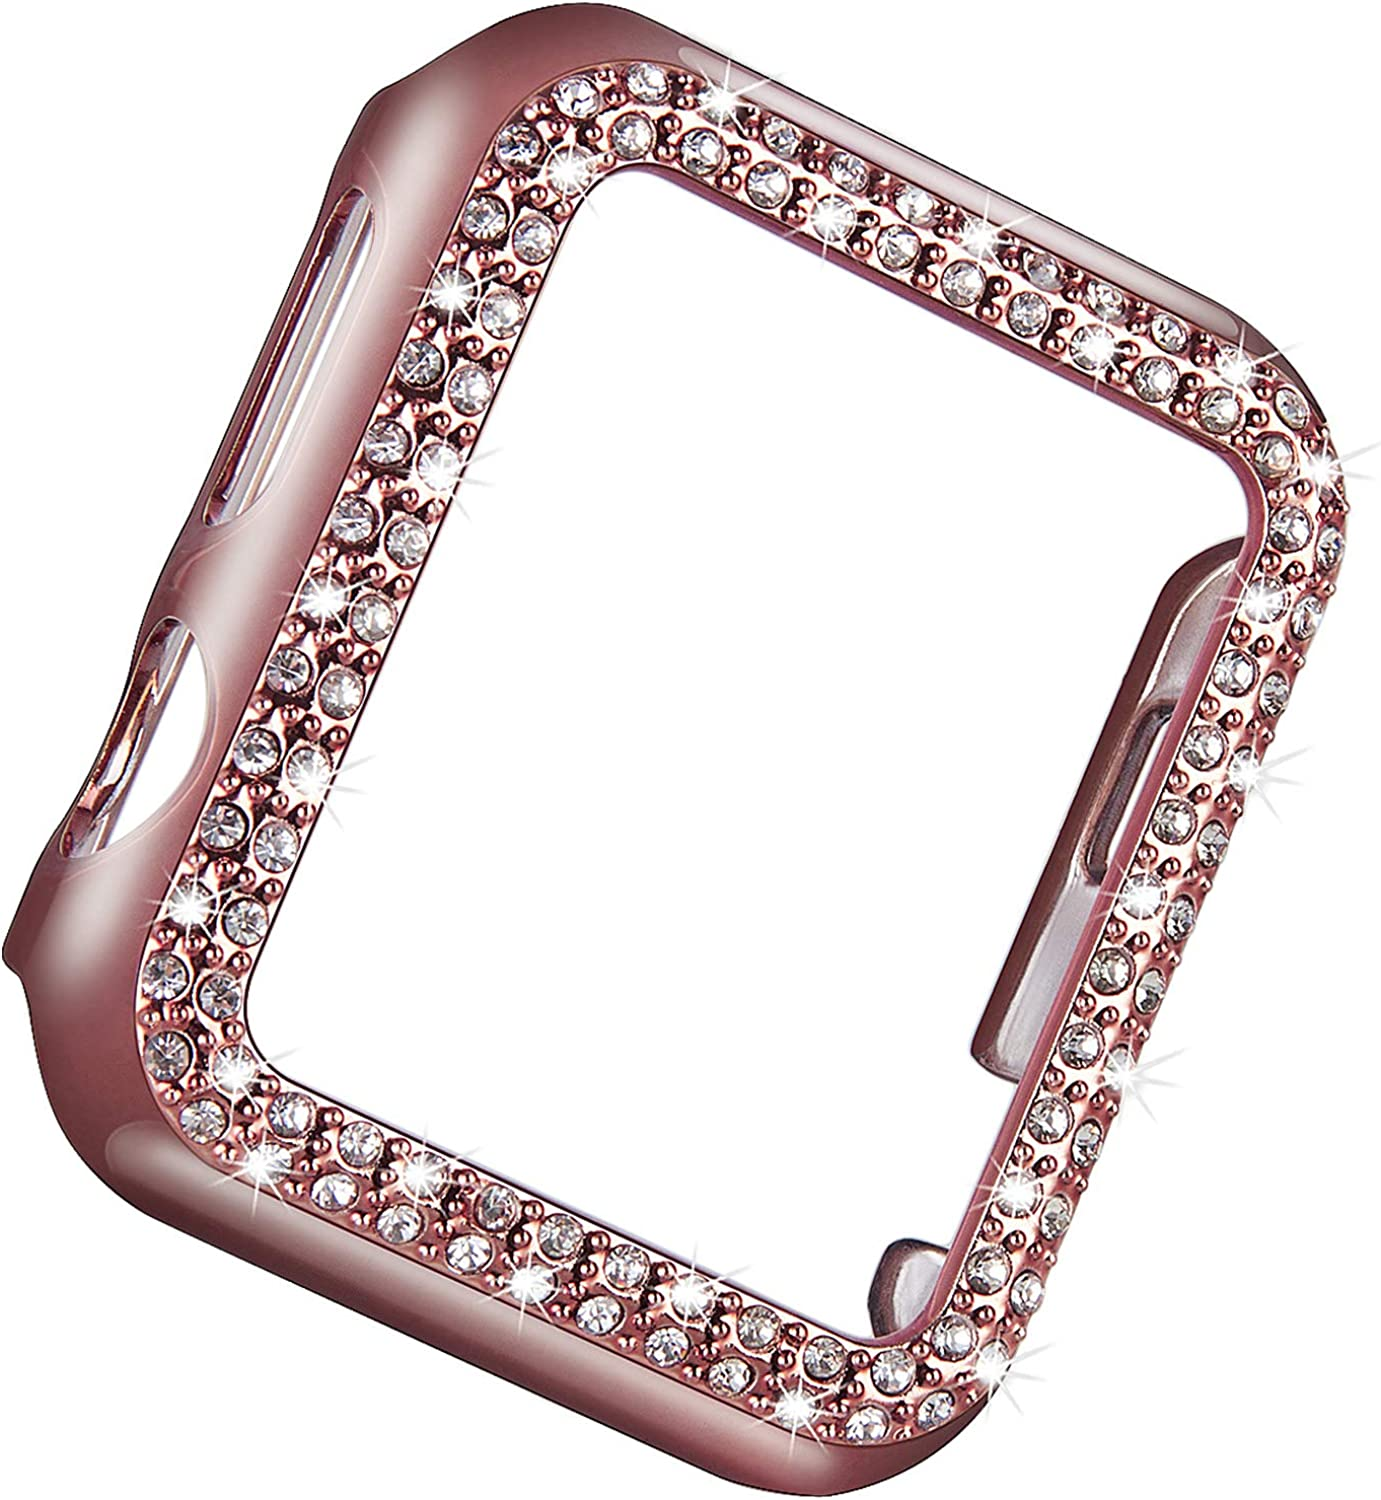 Vikoros Bling Protective Bumper Case Compatible with Apple Watch 38mm 42mm 40mm 44mm, Dressy Diamond Plate Frame Cover Screen Protector Compatible with iWatch Series 5 4 3 2 1